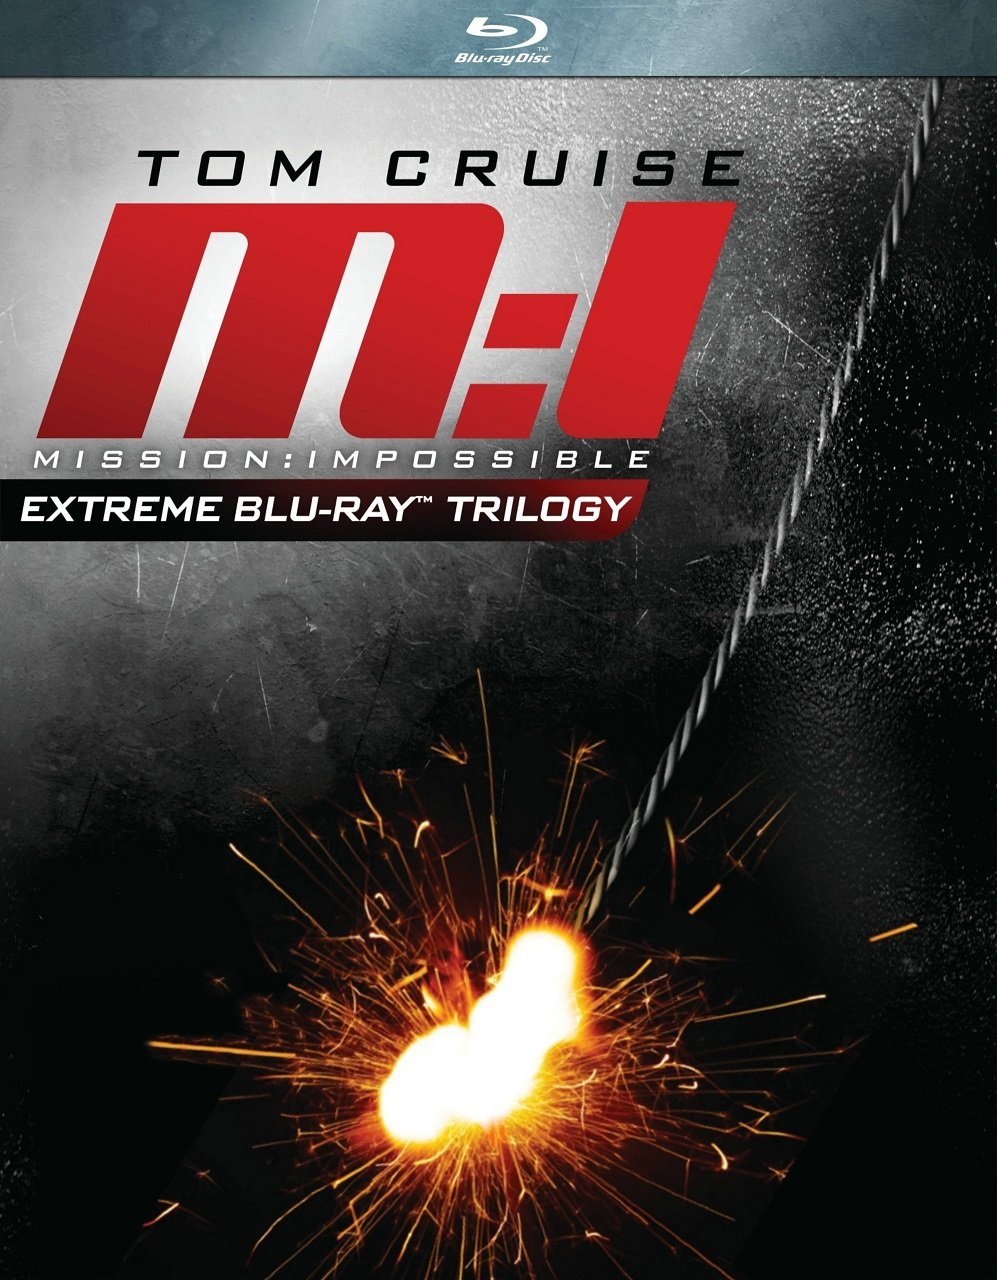 Download Mission Impossible 1996 720p BluRay DTS x264-CtrlHD